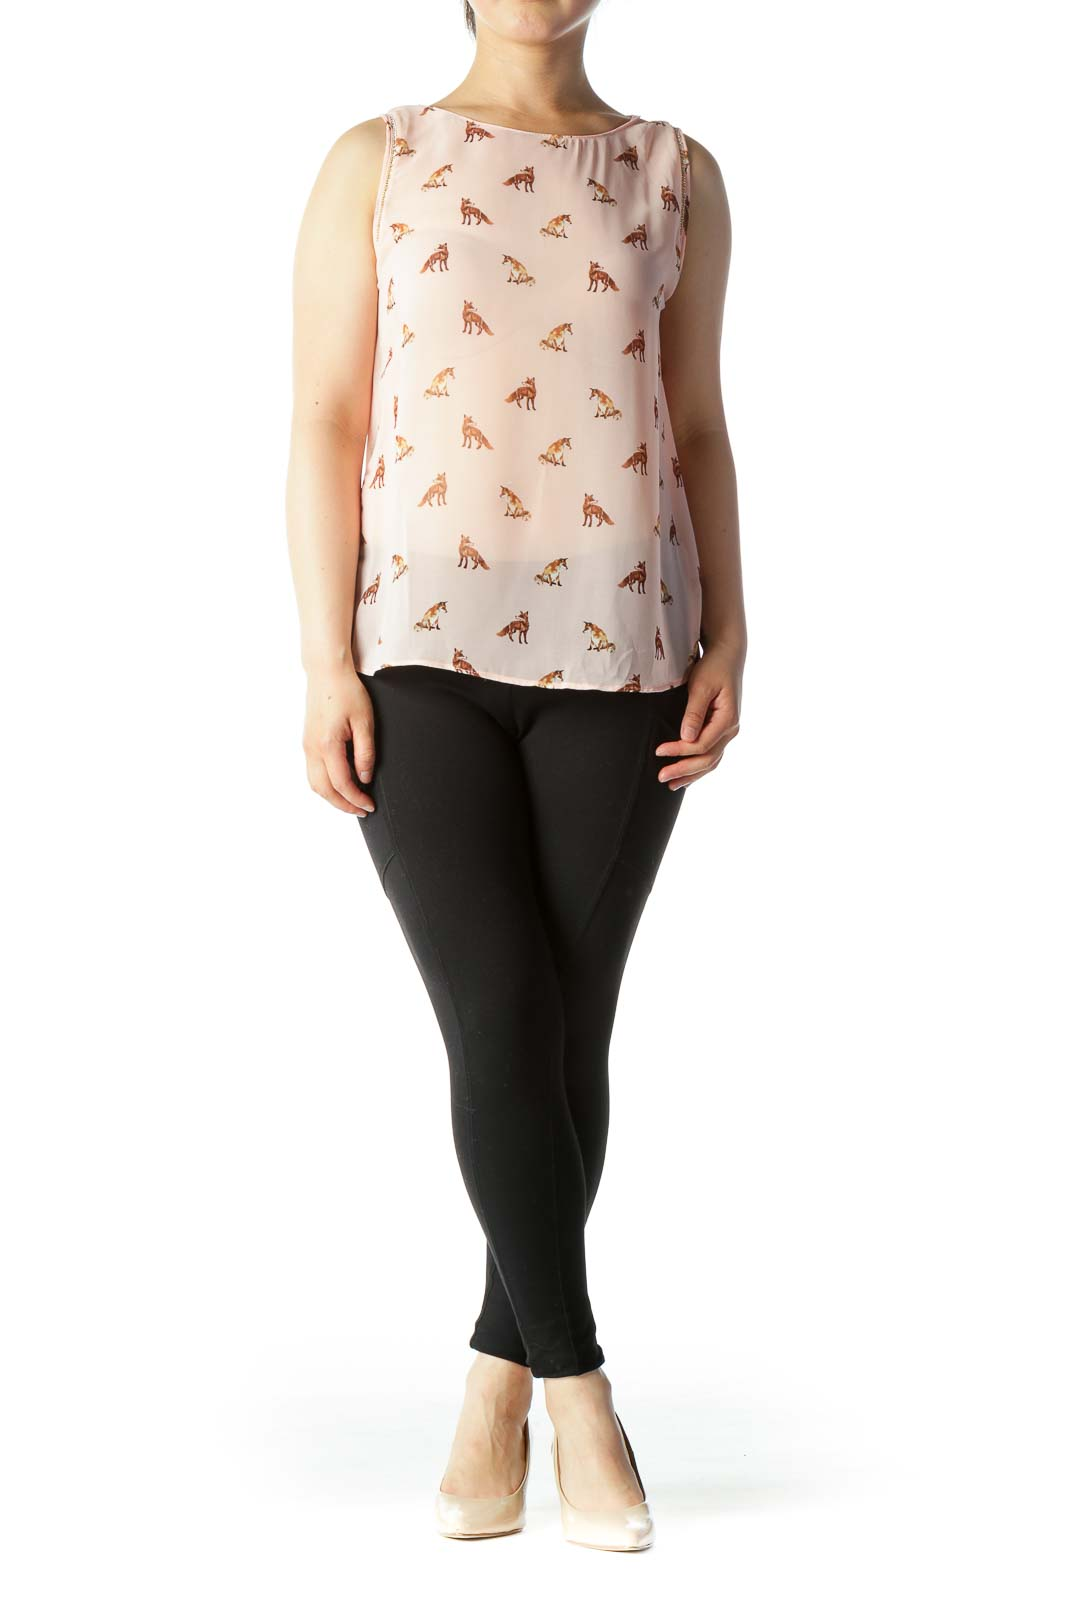 Coral Pink Foxes Print Sleeves Chain Detail Translucent Tank Top